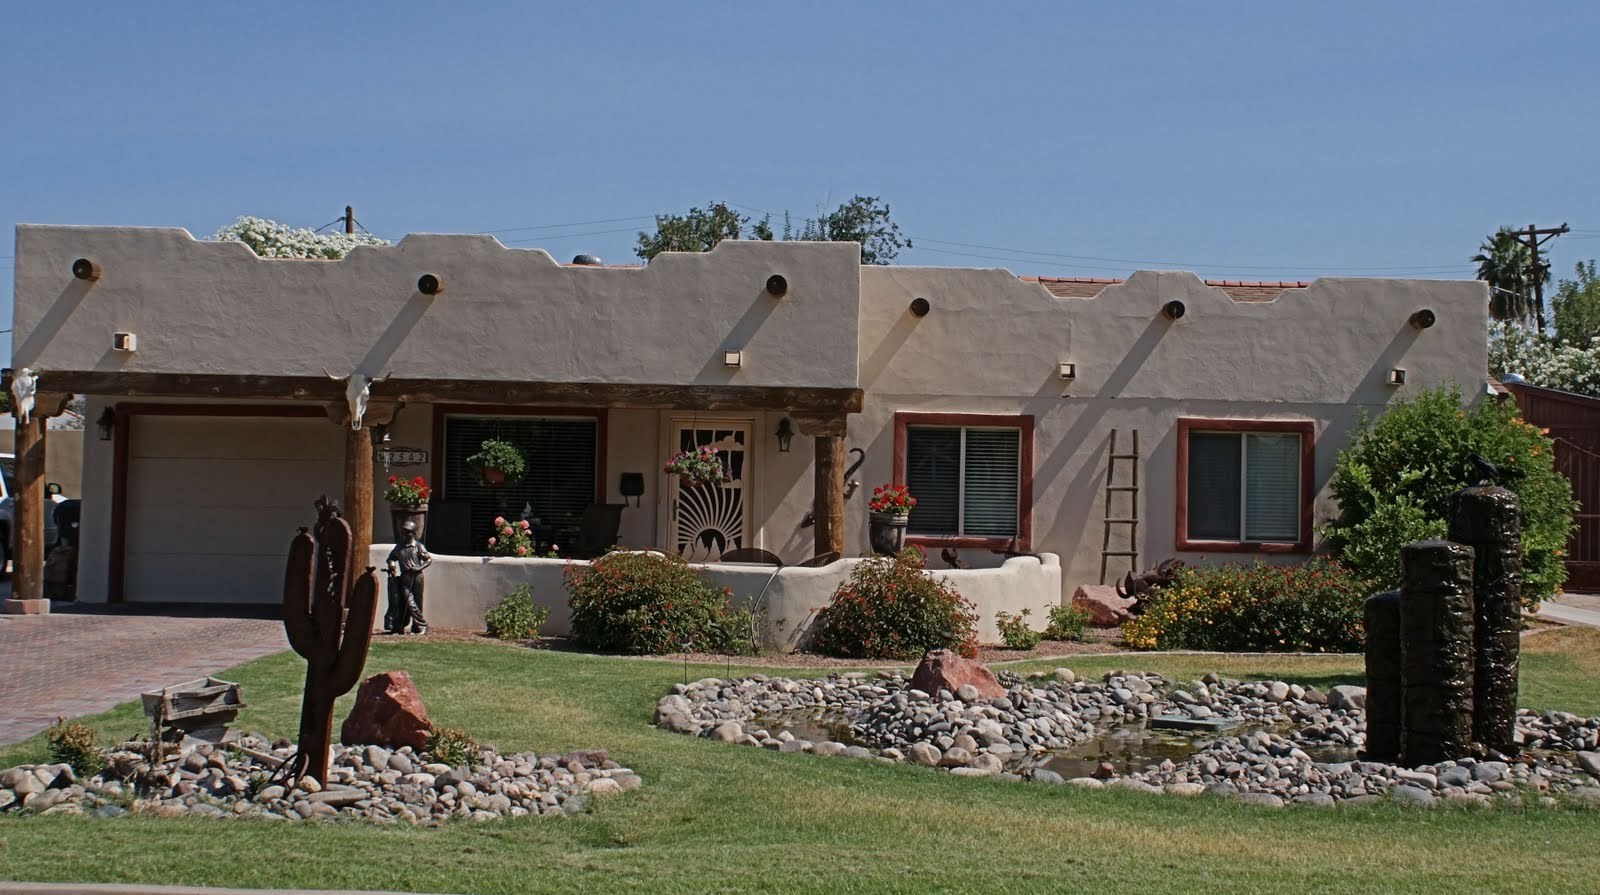 Awesome pueblo style home pictures house plans 16296 for Pueblo home builders